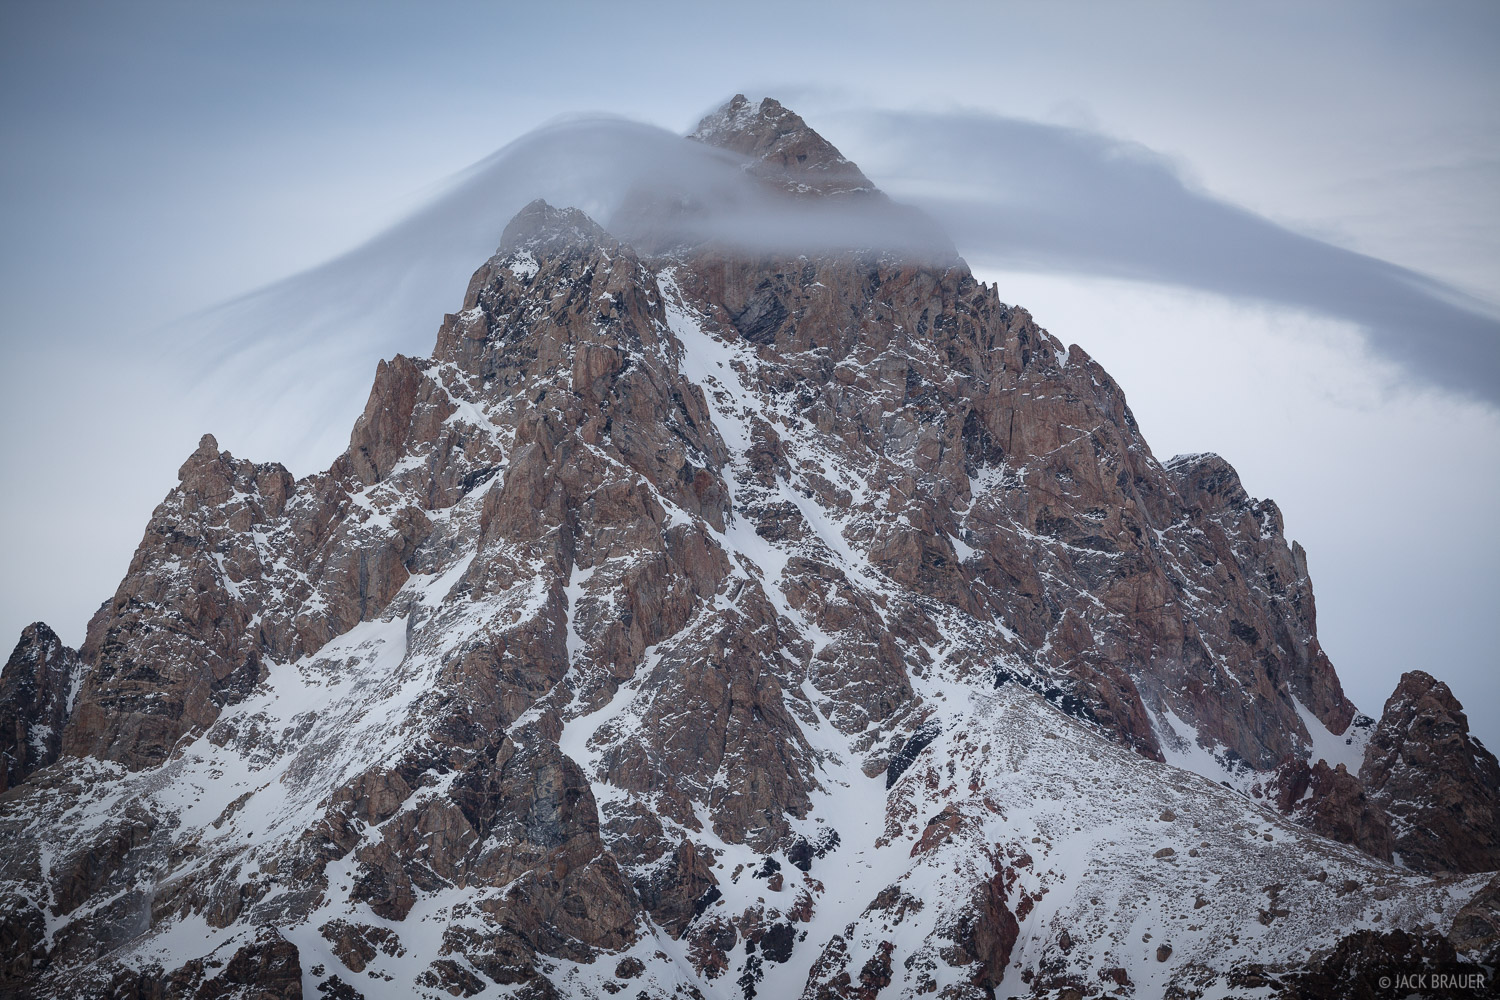 A streamer cloud hovering over the Grand Teton warns of a windy night - March.